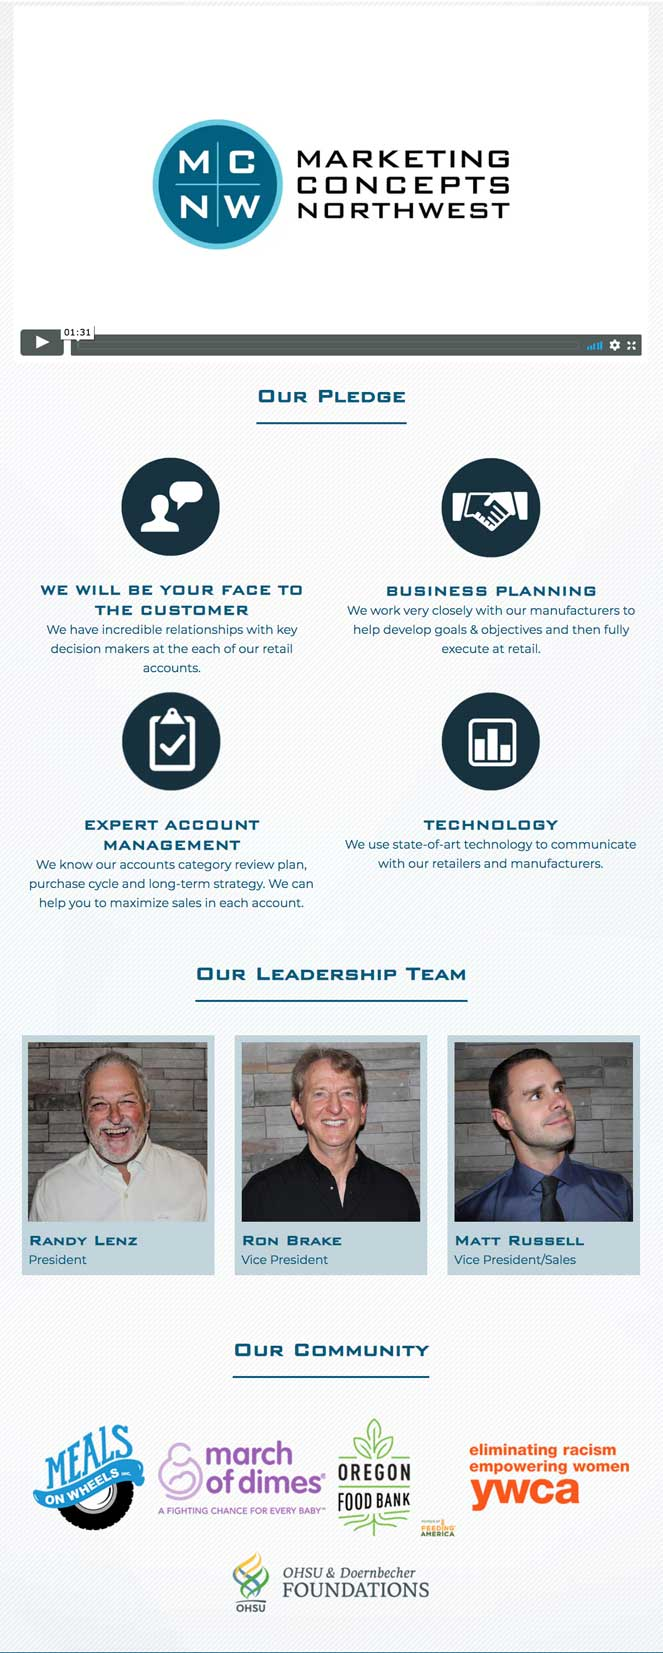 mcnw leadership and about us webpage designed by outside communications